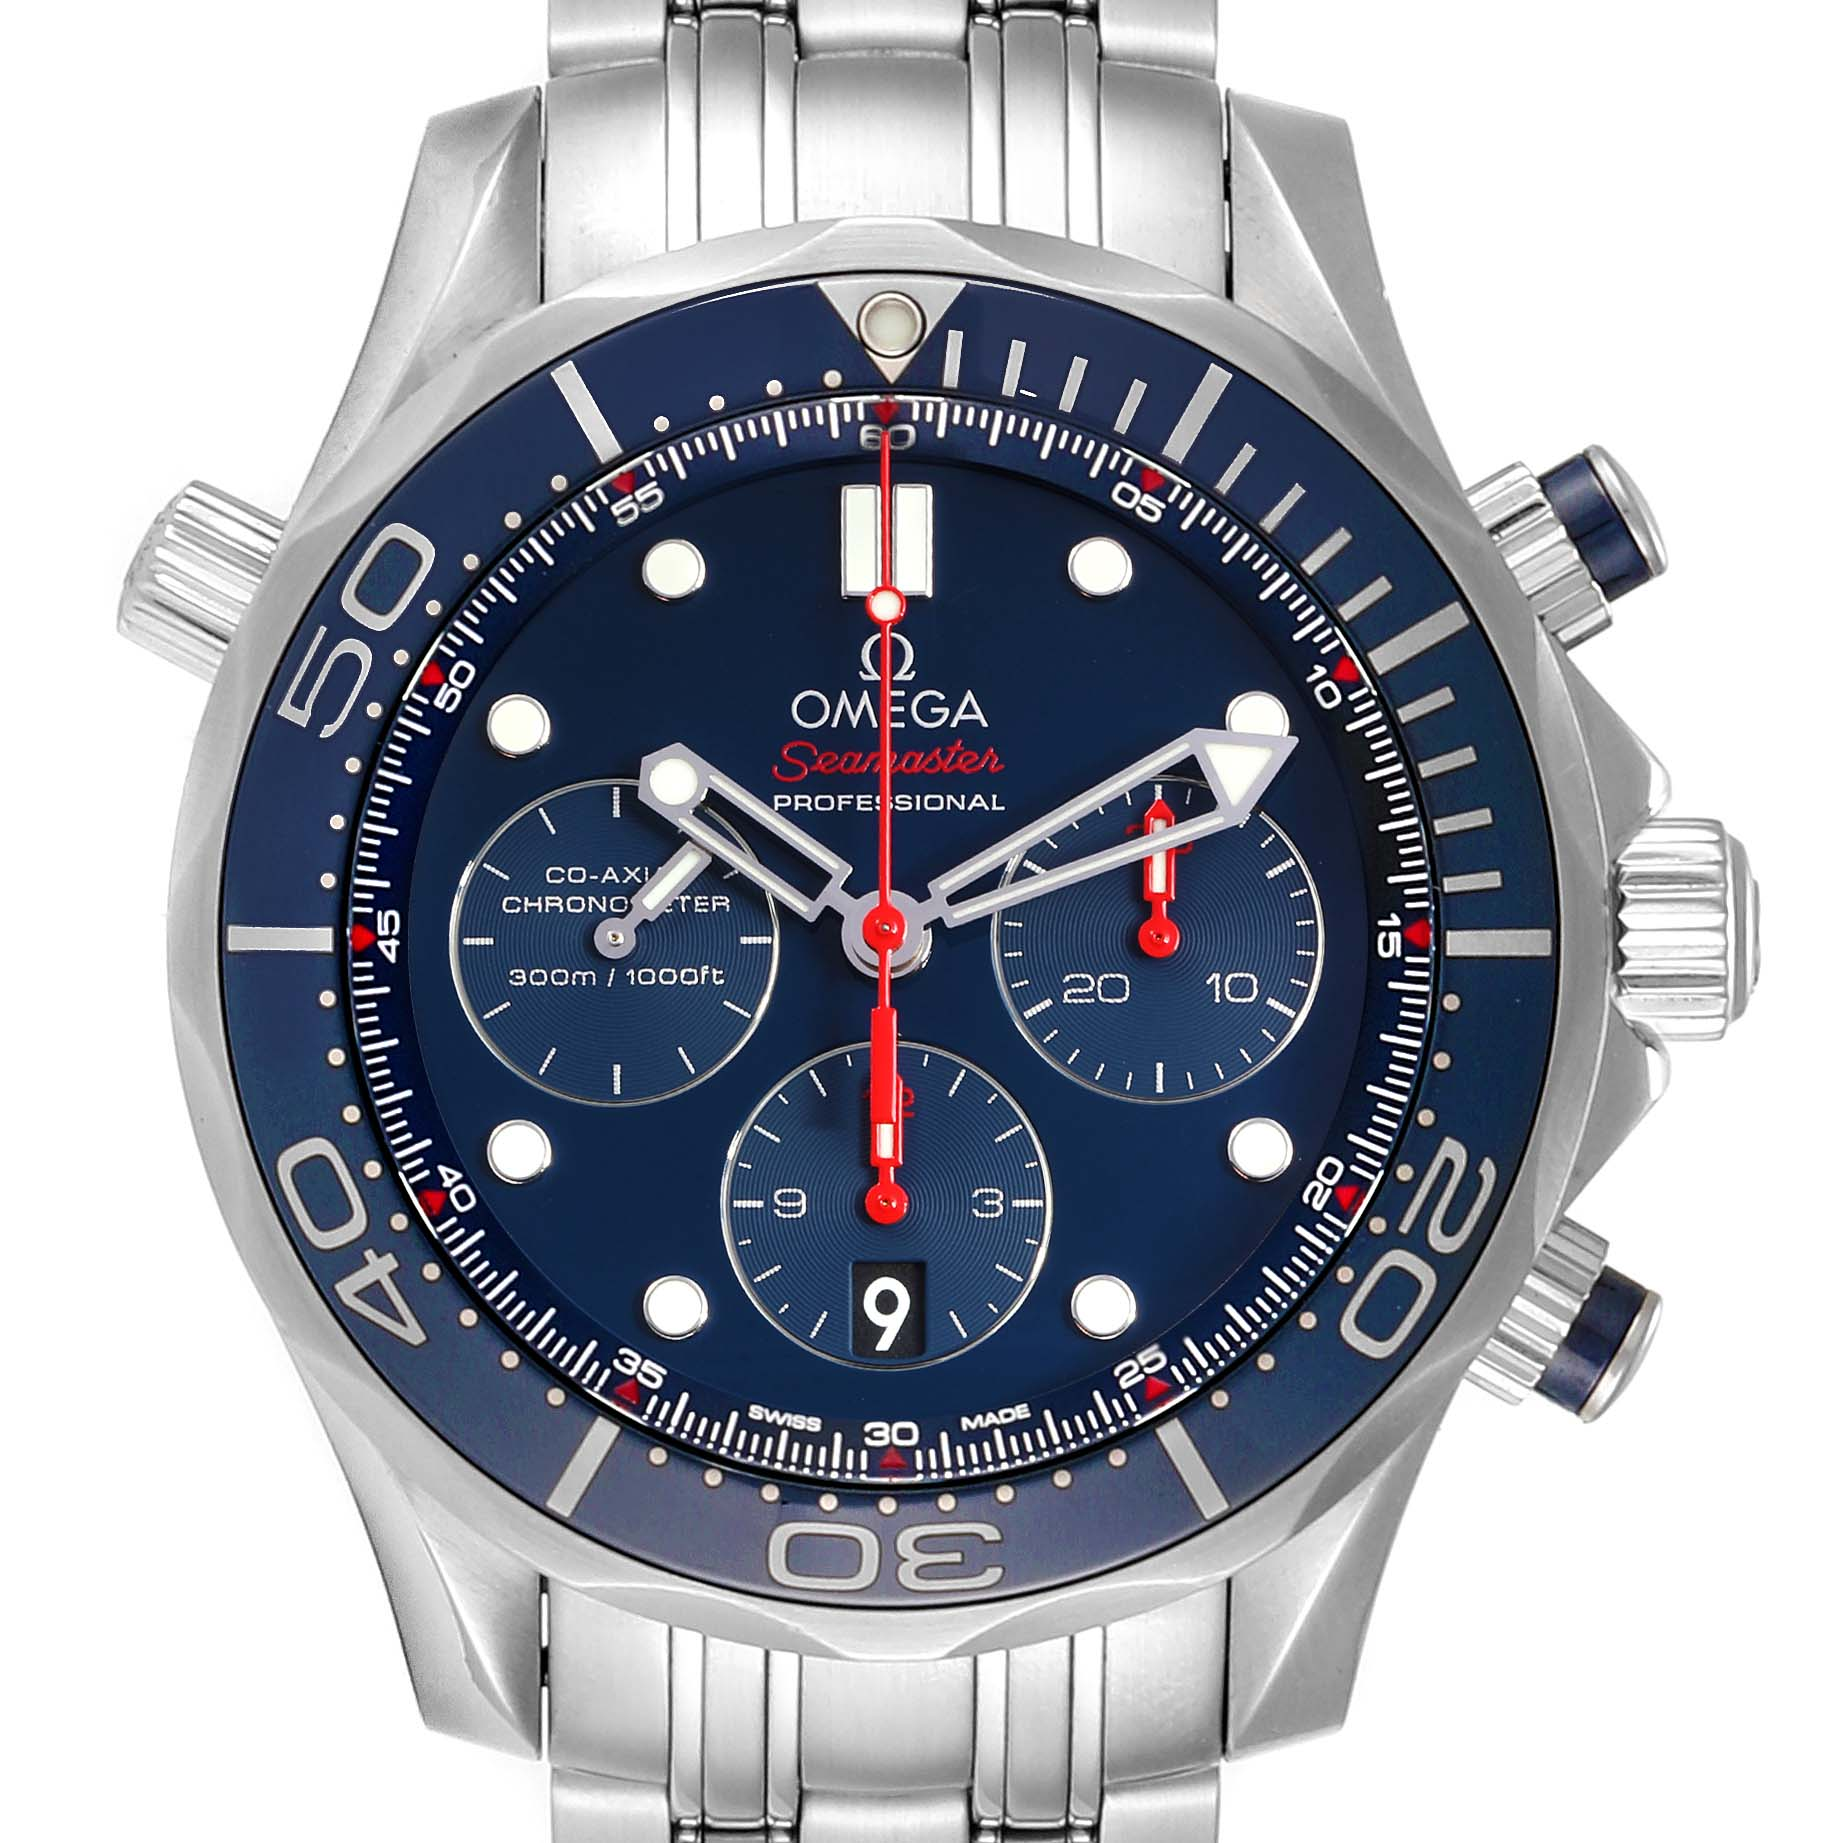 Omega Seamaster Diver 300M 44mm Watch 212.30.44.50.03.001 Card